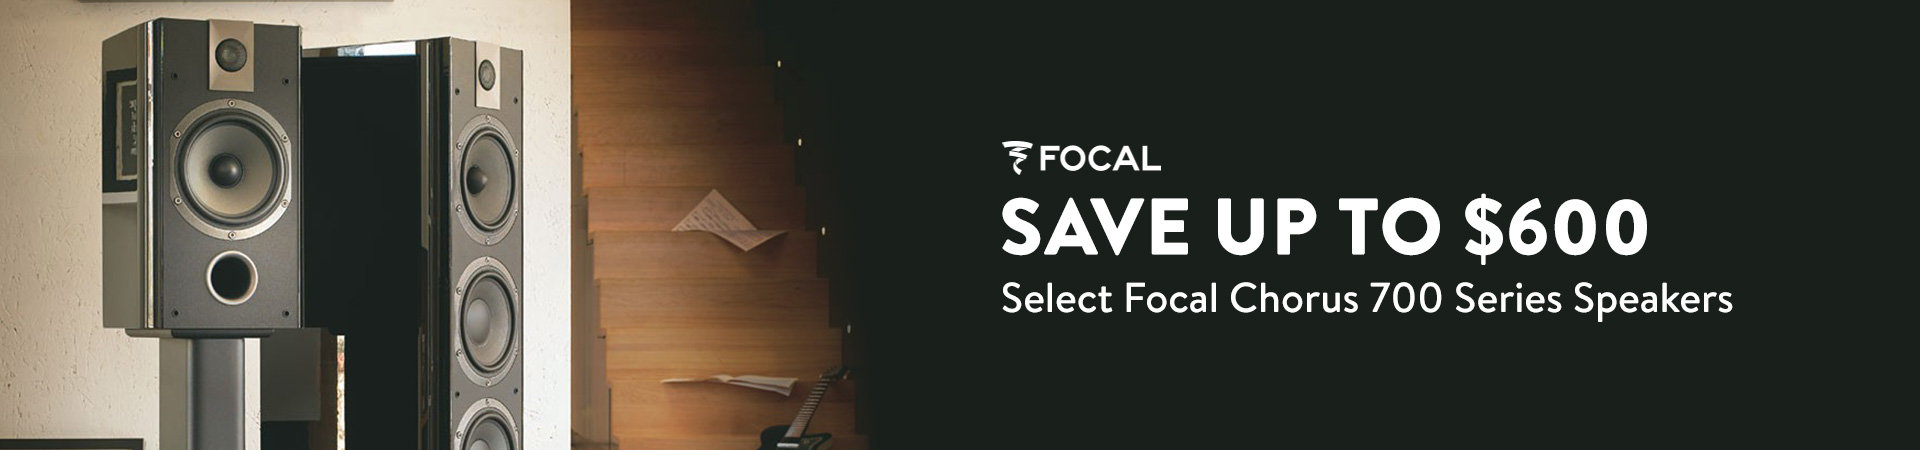 Focal Chorus Speakers Special Offers